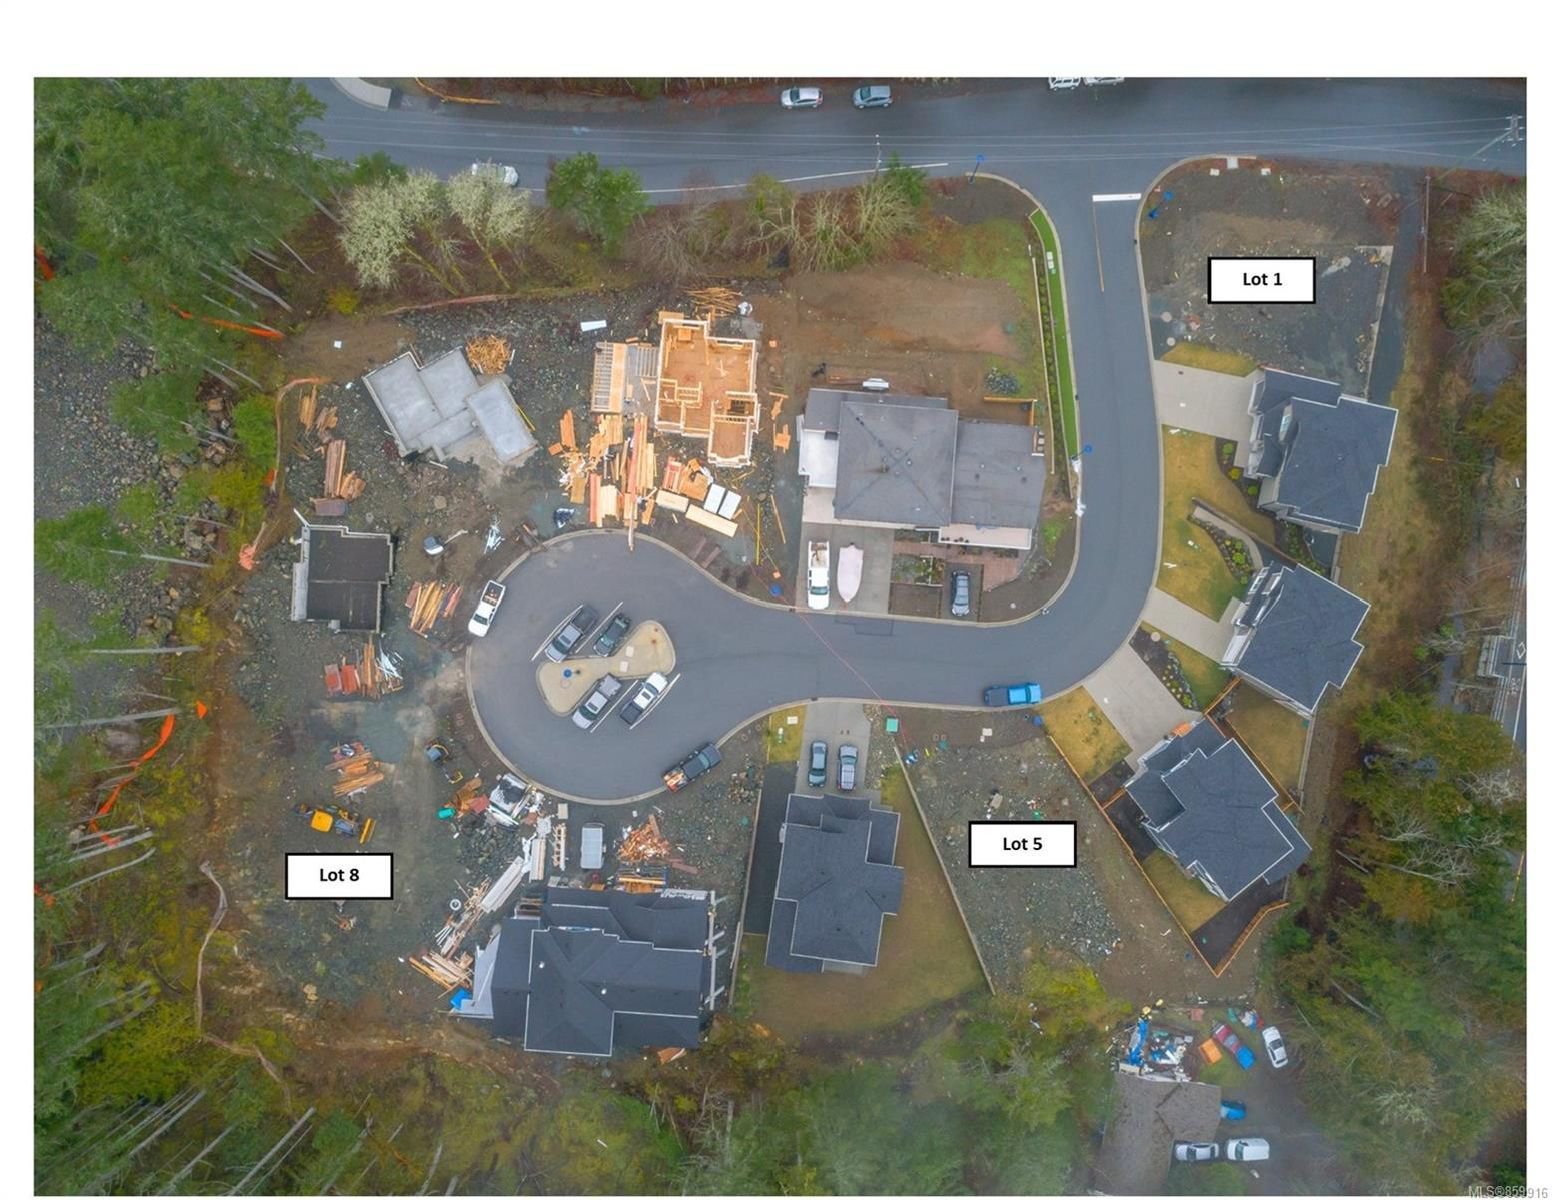 Main Photo: 3603 Urban Rise in : La Olympic View Land for sale (Langford)  : MLS®# 859916